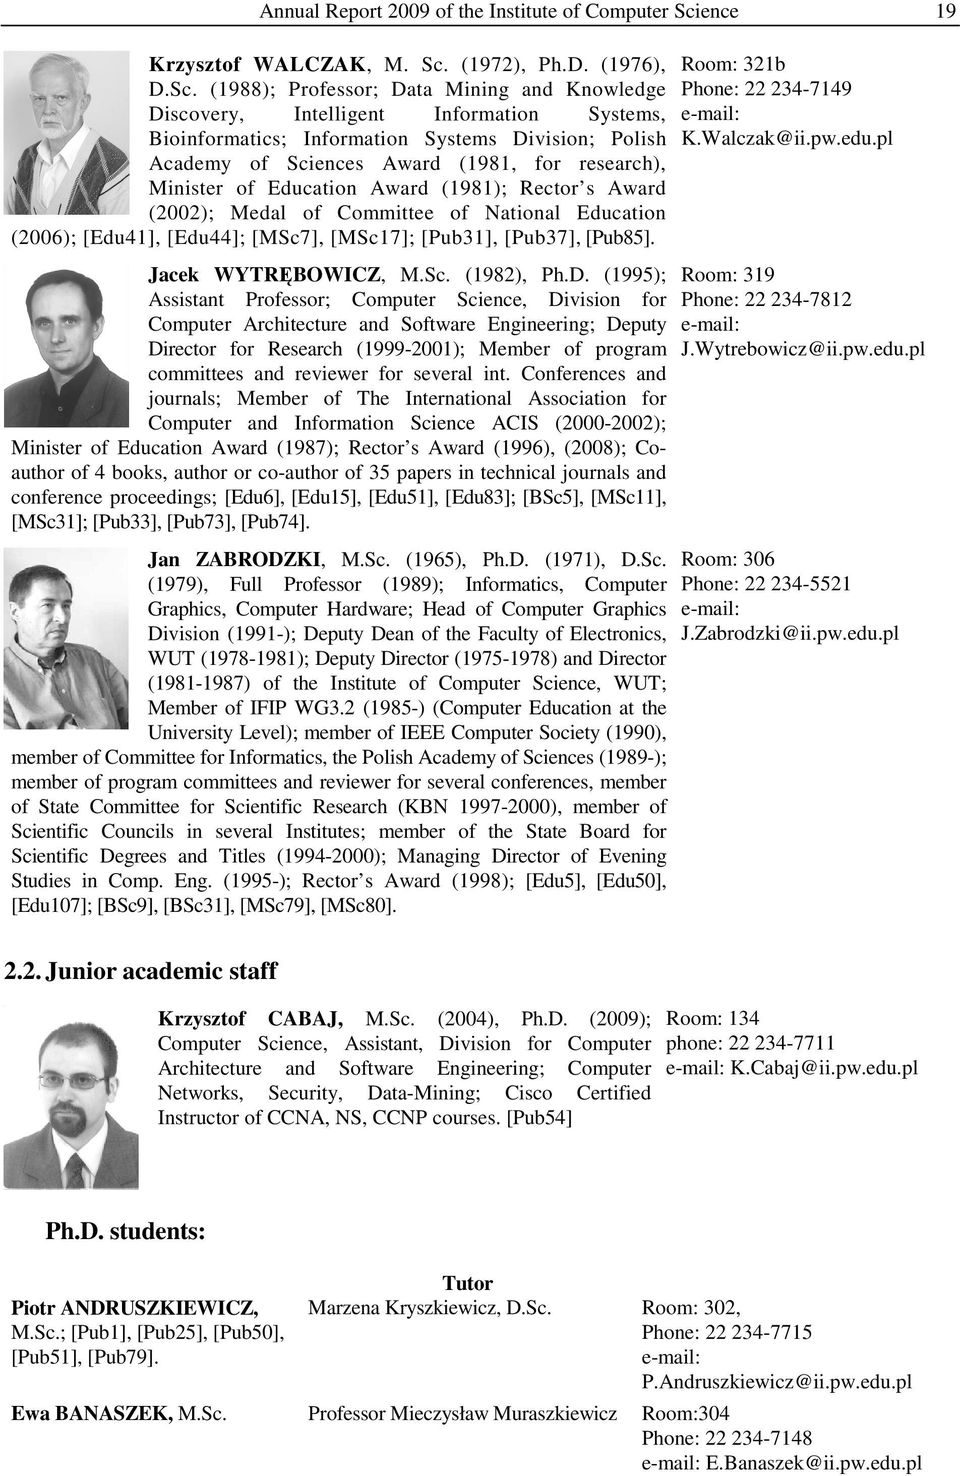 (1988); Professor; Data Mining and Knowledge Discovery, Intelligent Information Systems, Bioinformatics; Information Systems Division; Polish Academy of Sciences Award (1981, for research), Minister